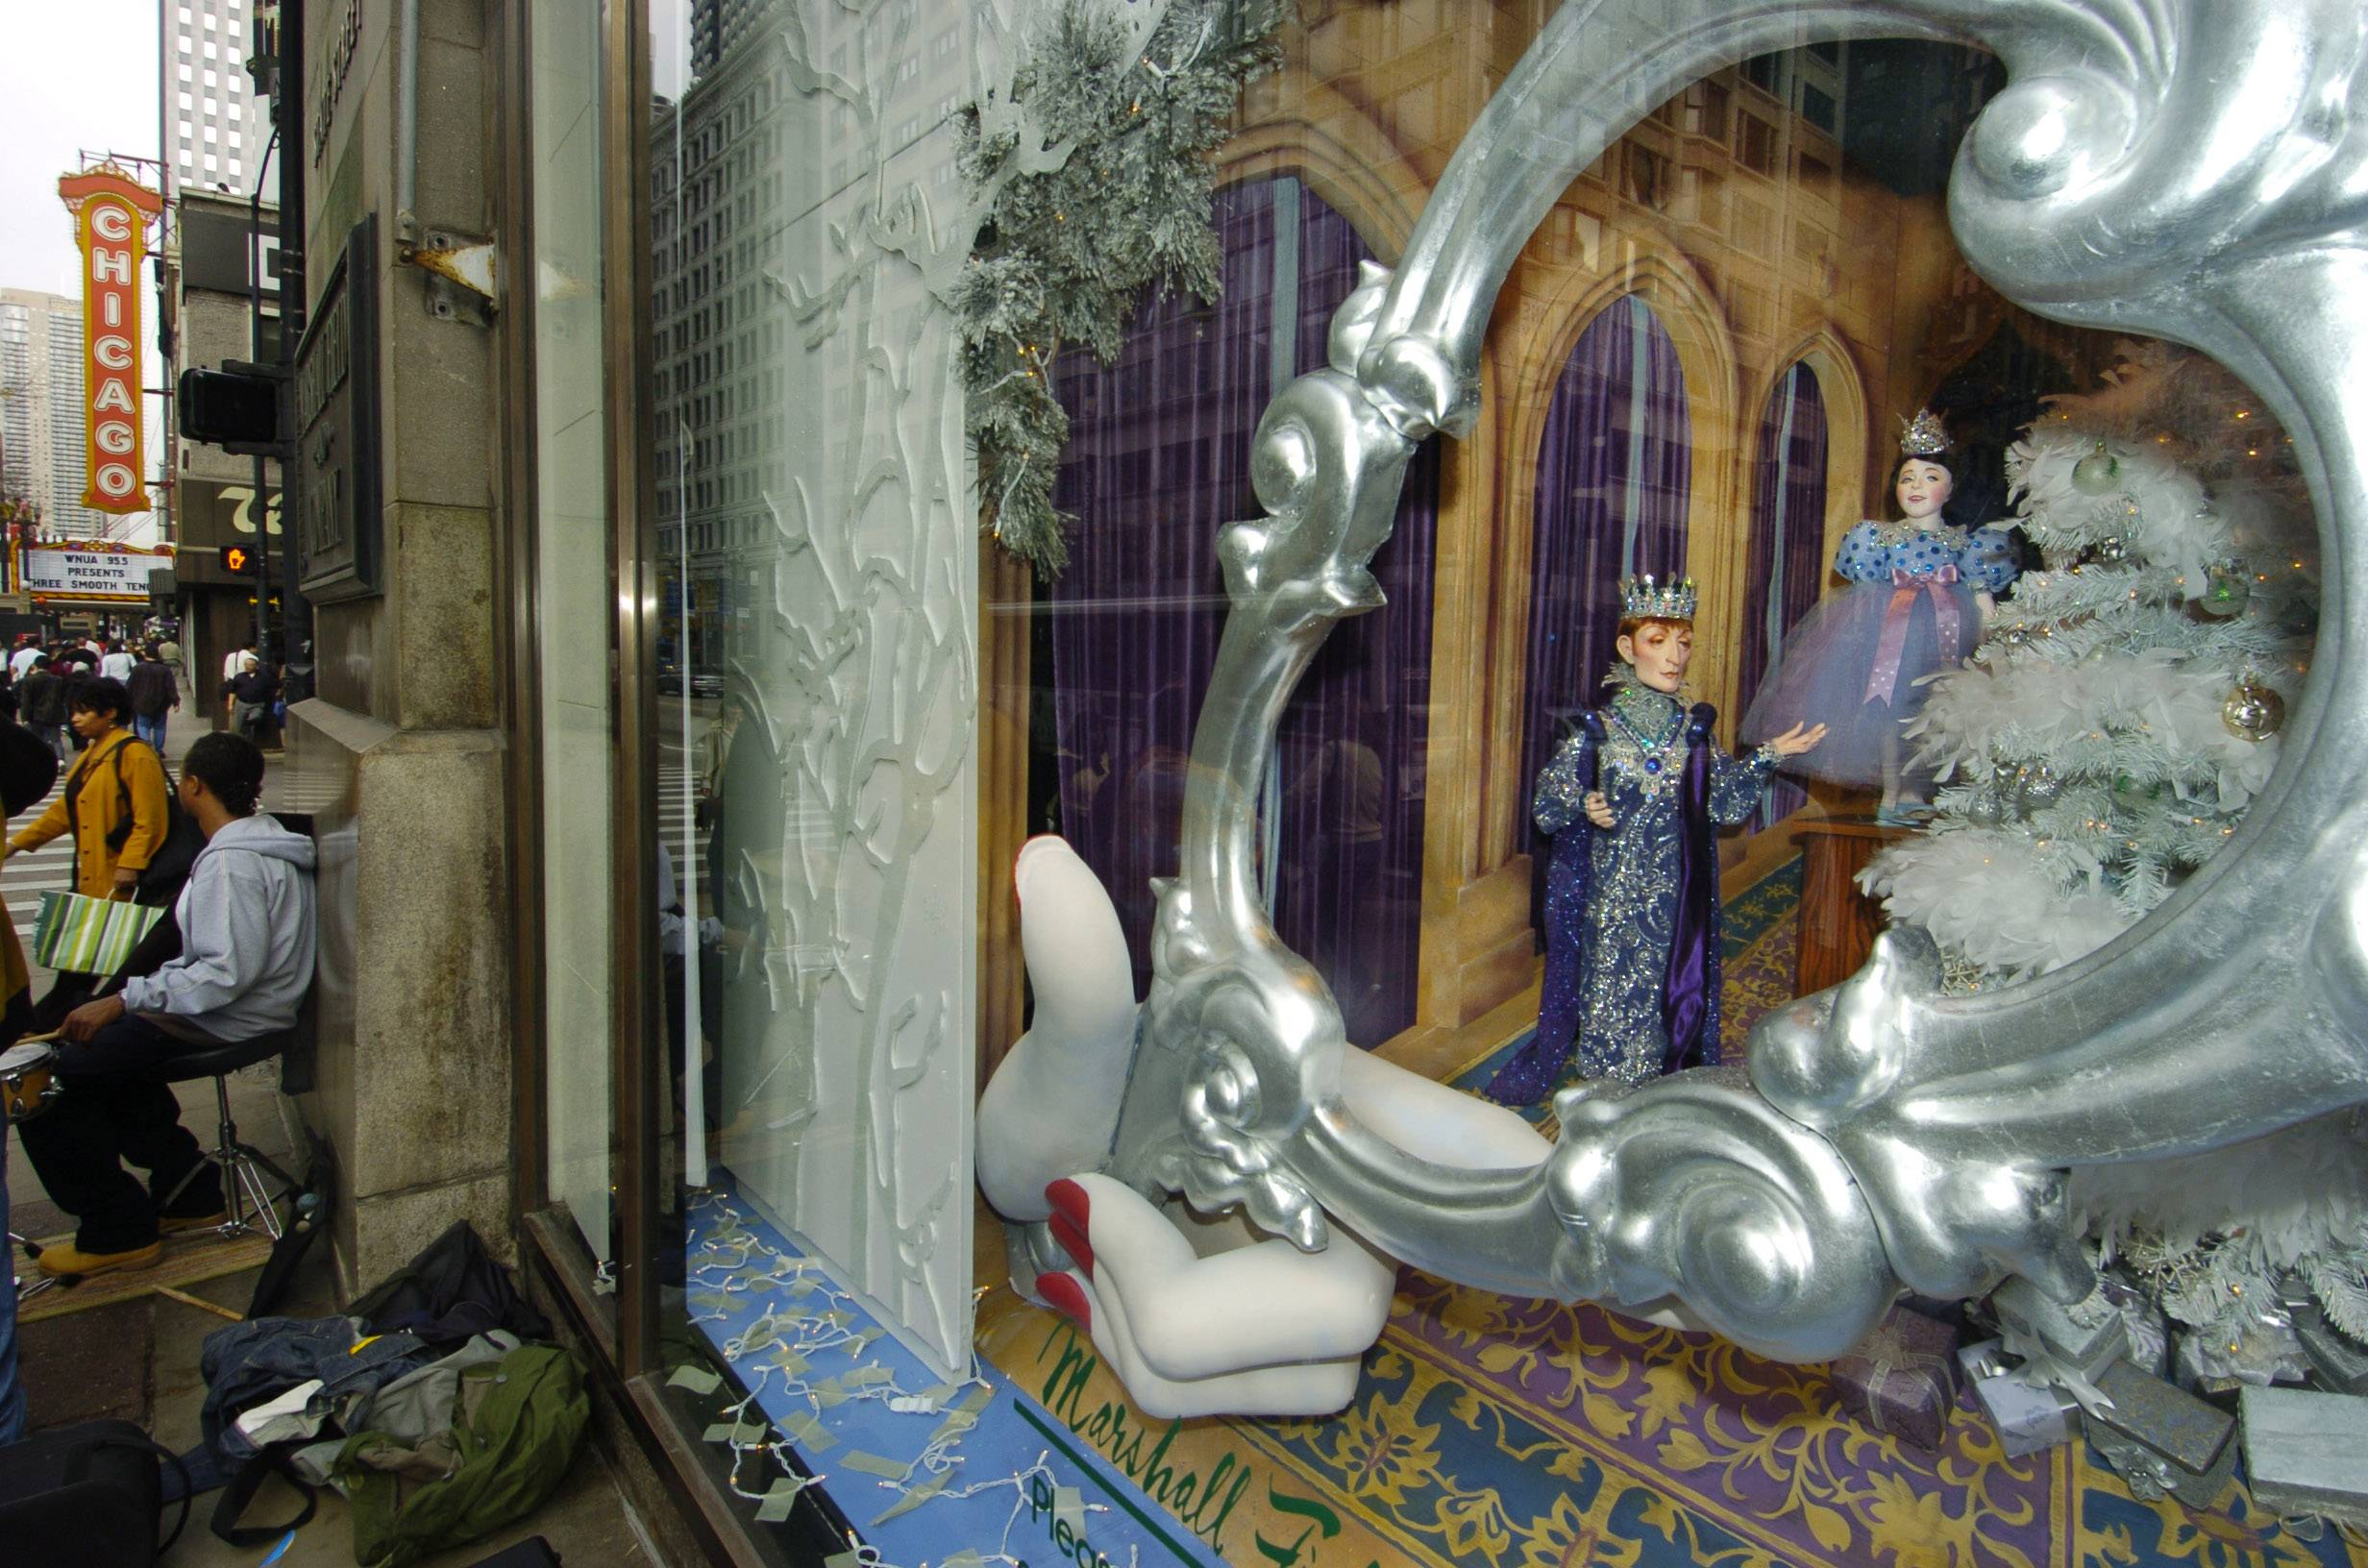 Themed Christmas windows were a draw to the former Marshall Field's store on State Street in Chicago.